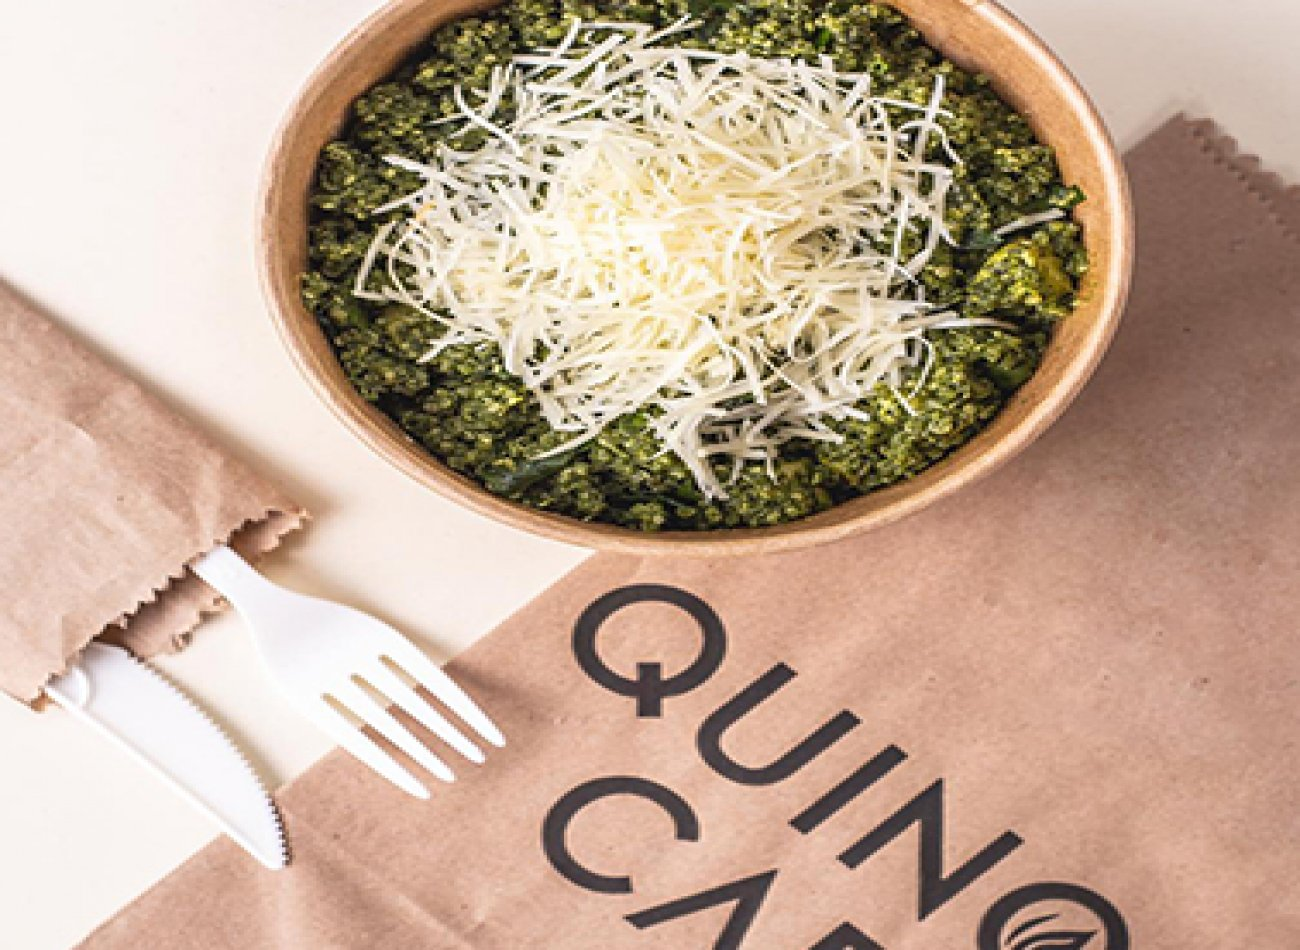 QUINOA CAFé - MIRAFLORES Restaurant - and Peruvian Food COFFEE SHOP  - MIRAFLORES - MESA 24/7 Guide | LIMA - Peru